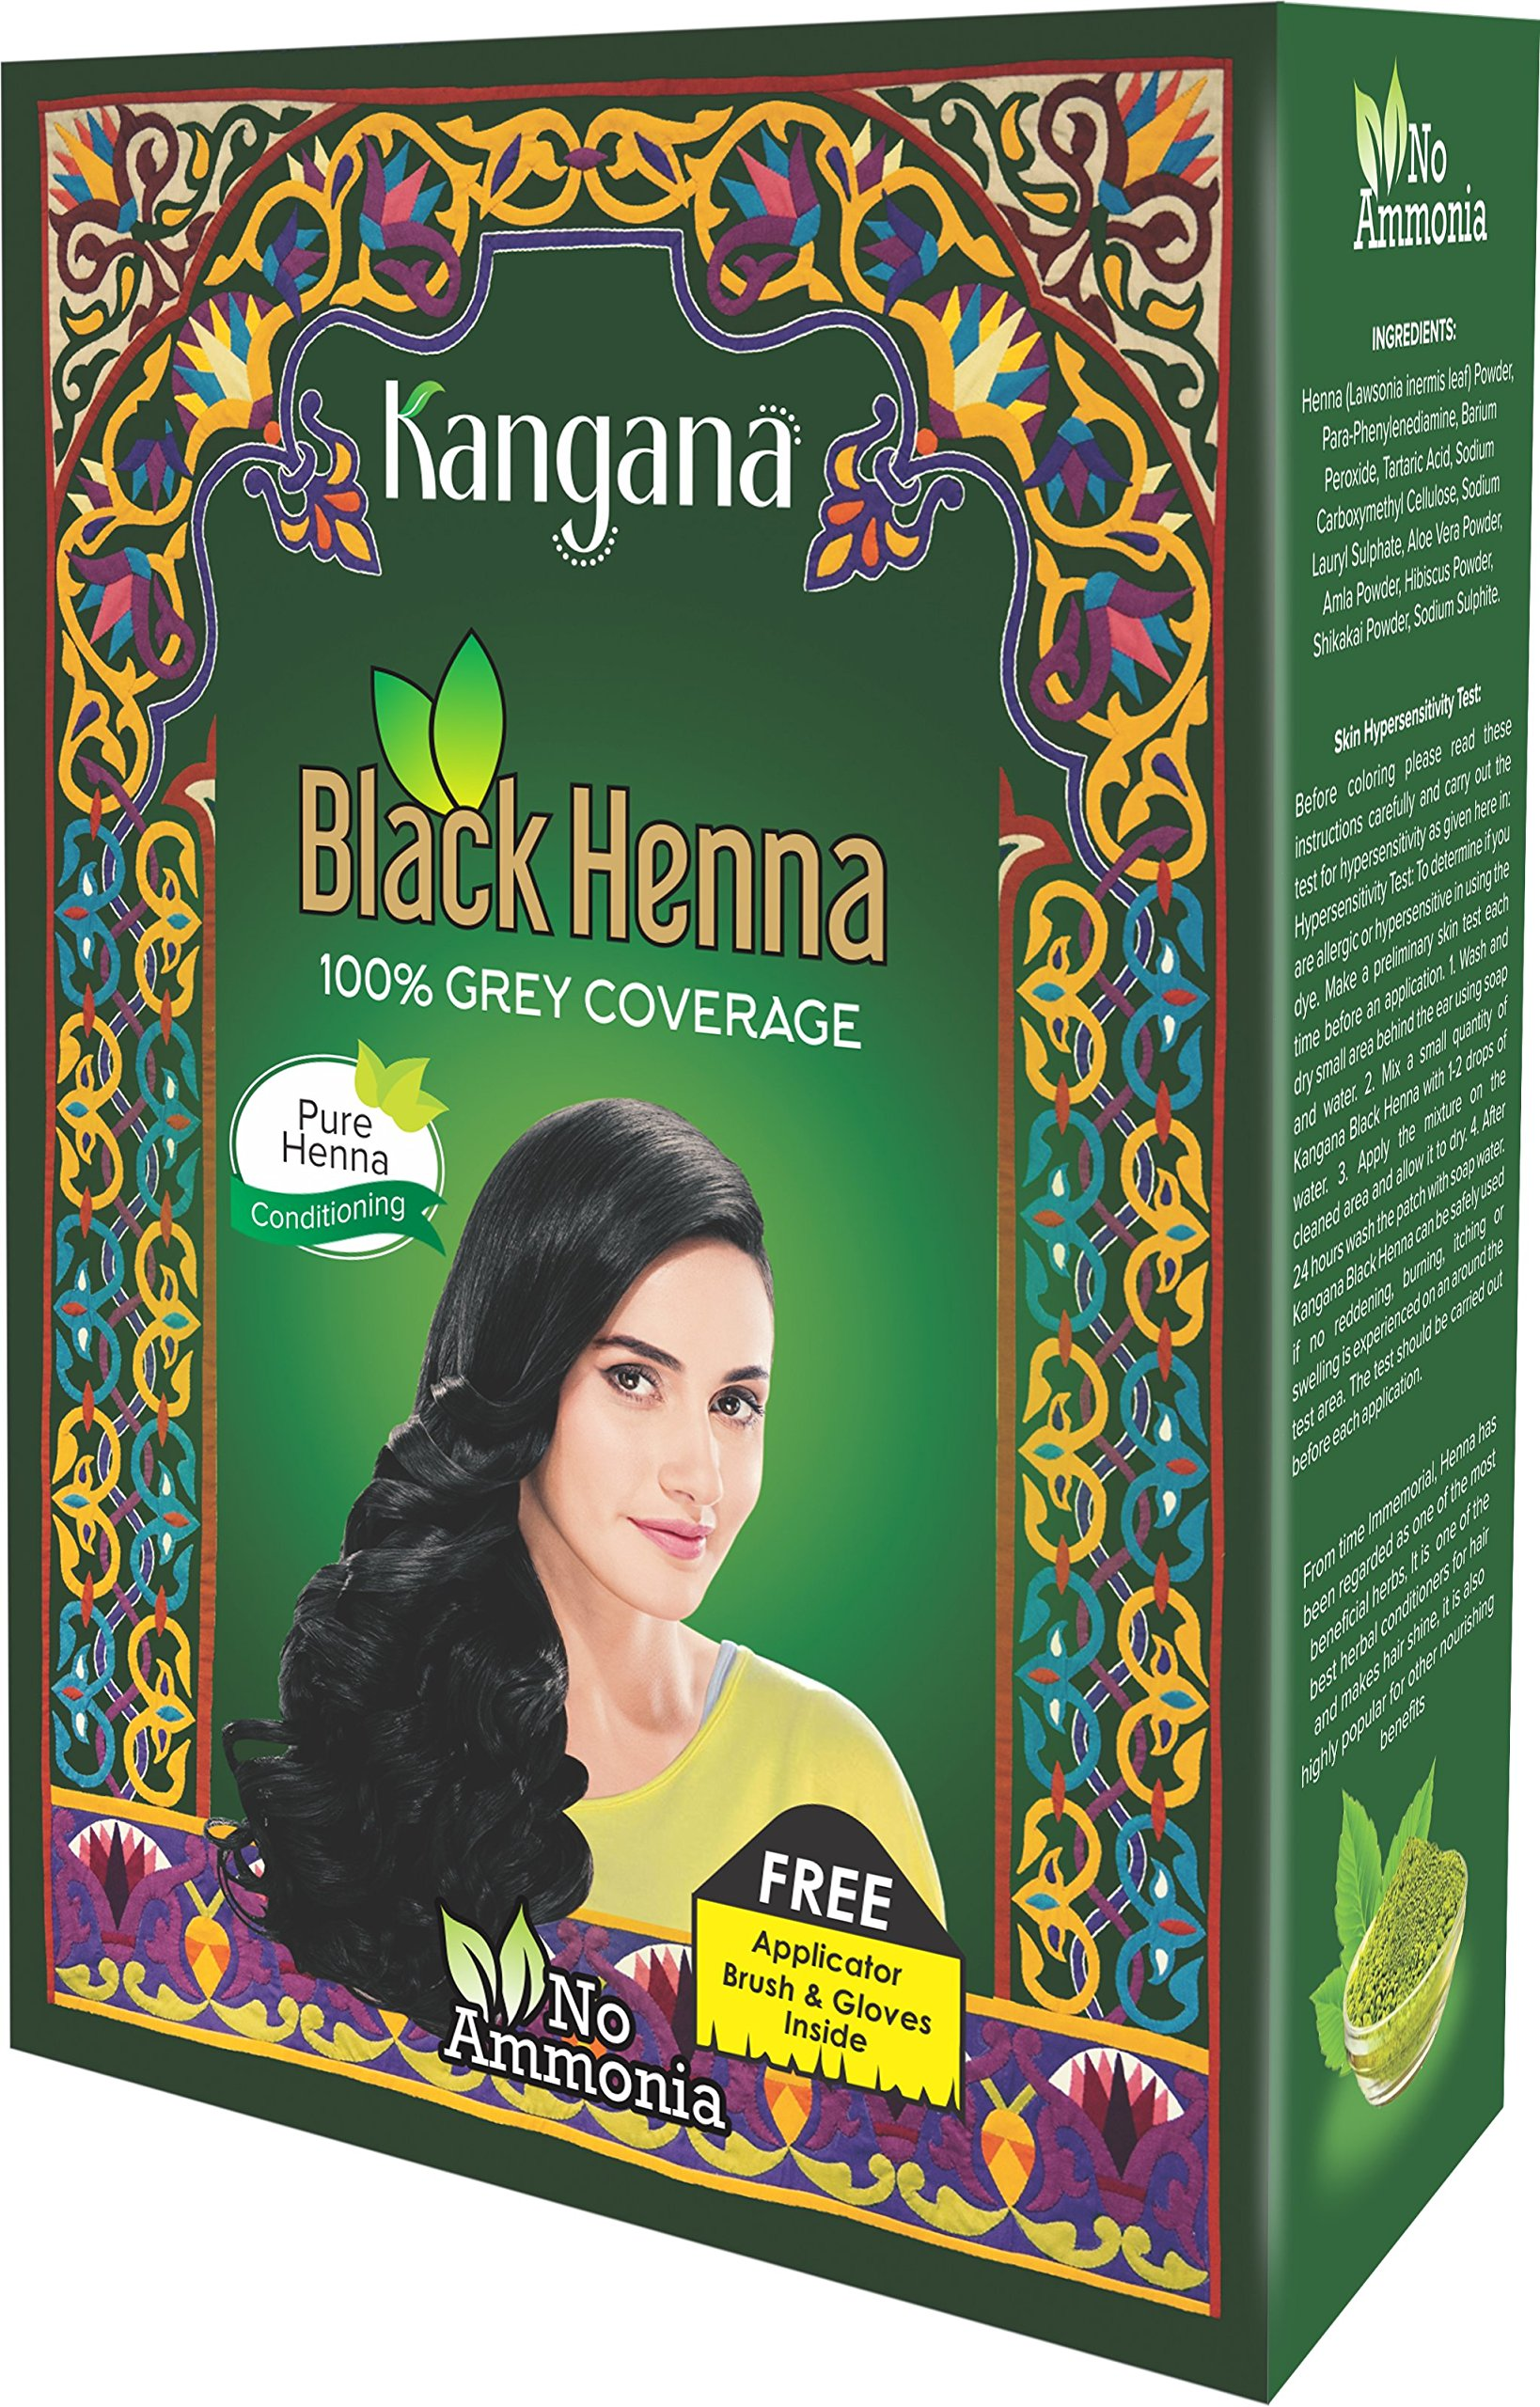 Kangana Black Henna Powder for 100% Grey Coverage - Natural Black Henna Powder for Hair Dye/Color Pack of 6-60g (2.11 Oz) by Kangana